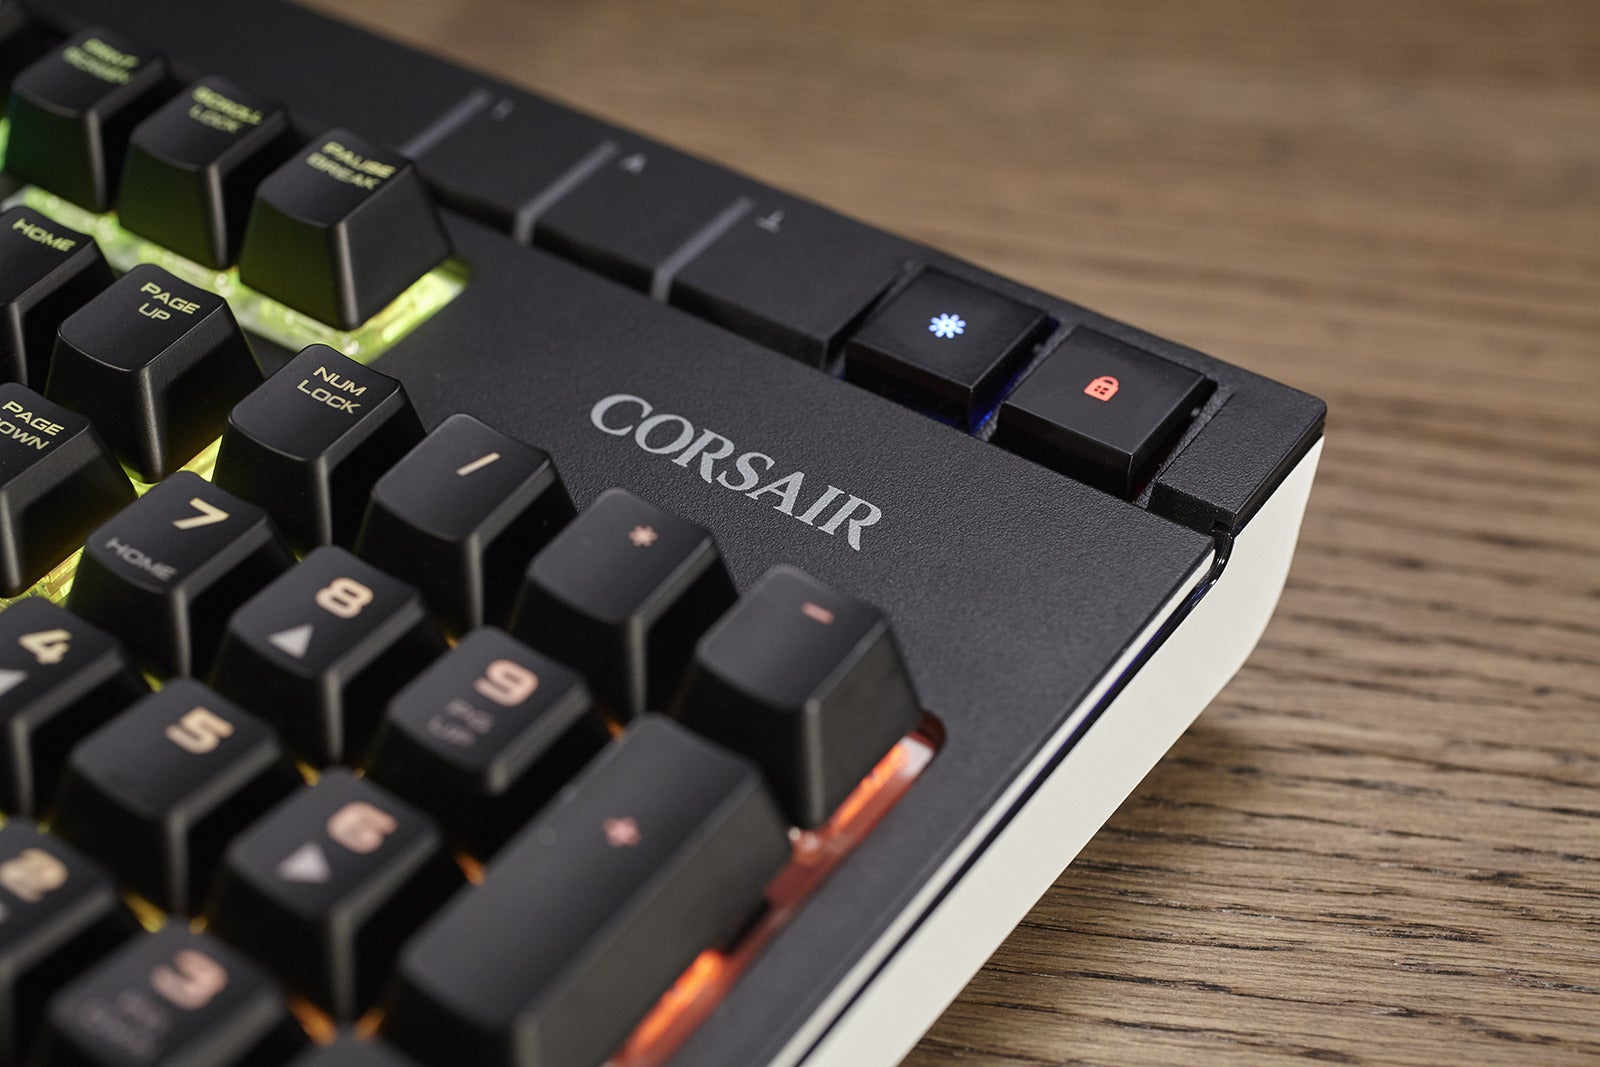 Corsair And Cherry Develop New Silent Mx Red Mechanical Gaming K95 Rgb Brown Keyboard Switch Pcworld